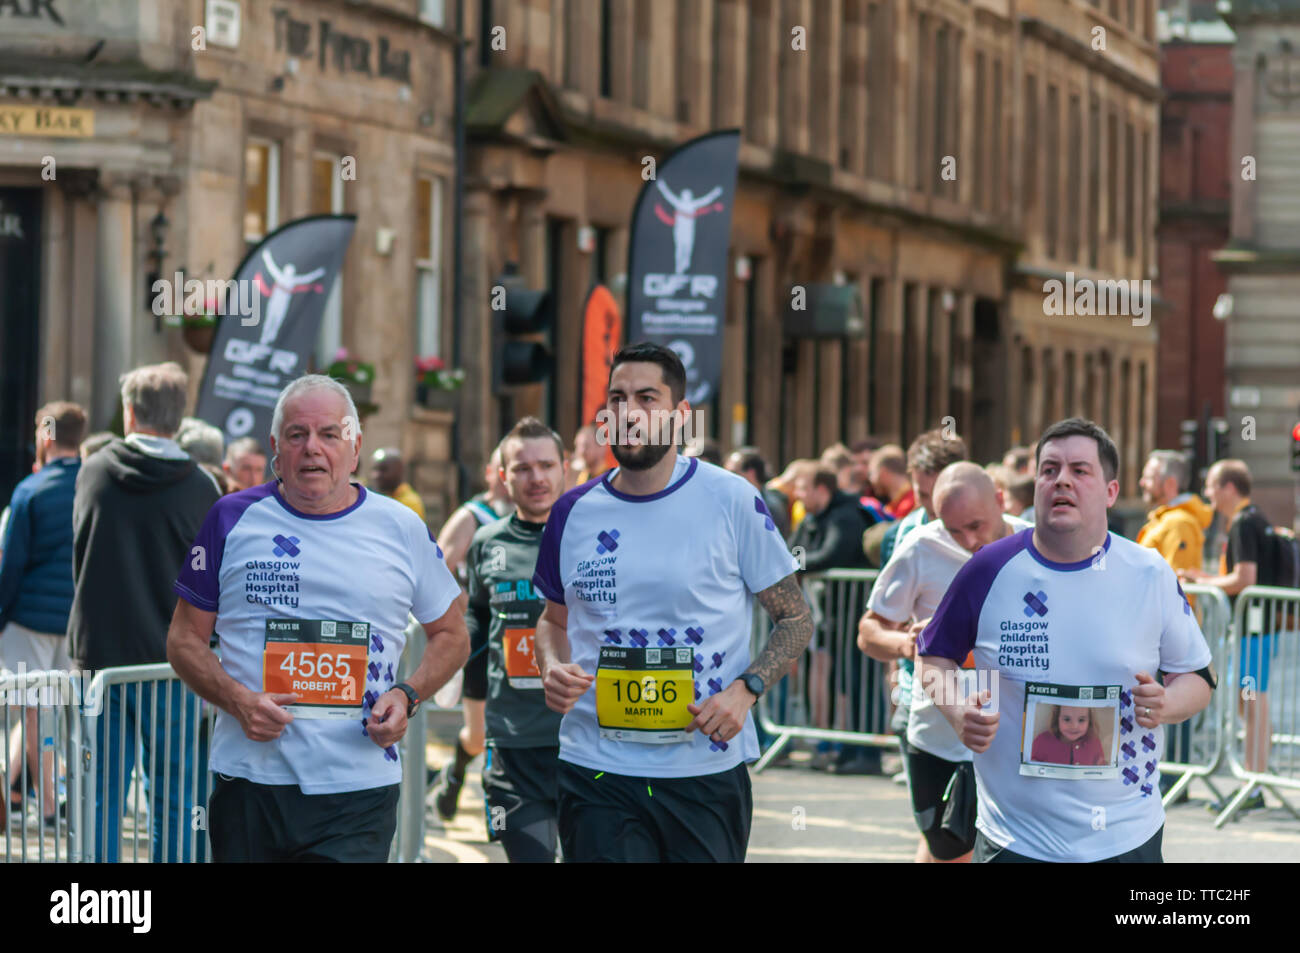 Glasgow, Scotland, UK. 16th June, 2019. Runners at George Square during the Men's 10K Run which has been an annual event since 2004. Thousands of runners take to the streets of the city to get fit, fundraise, and raise awareness of men's health issues. The run coincides with Fathers Day and starts at the Riverside Museum and  finishes at George Square. Credit: Skully/Alamy Live News - Stock Image